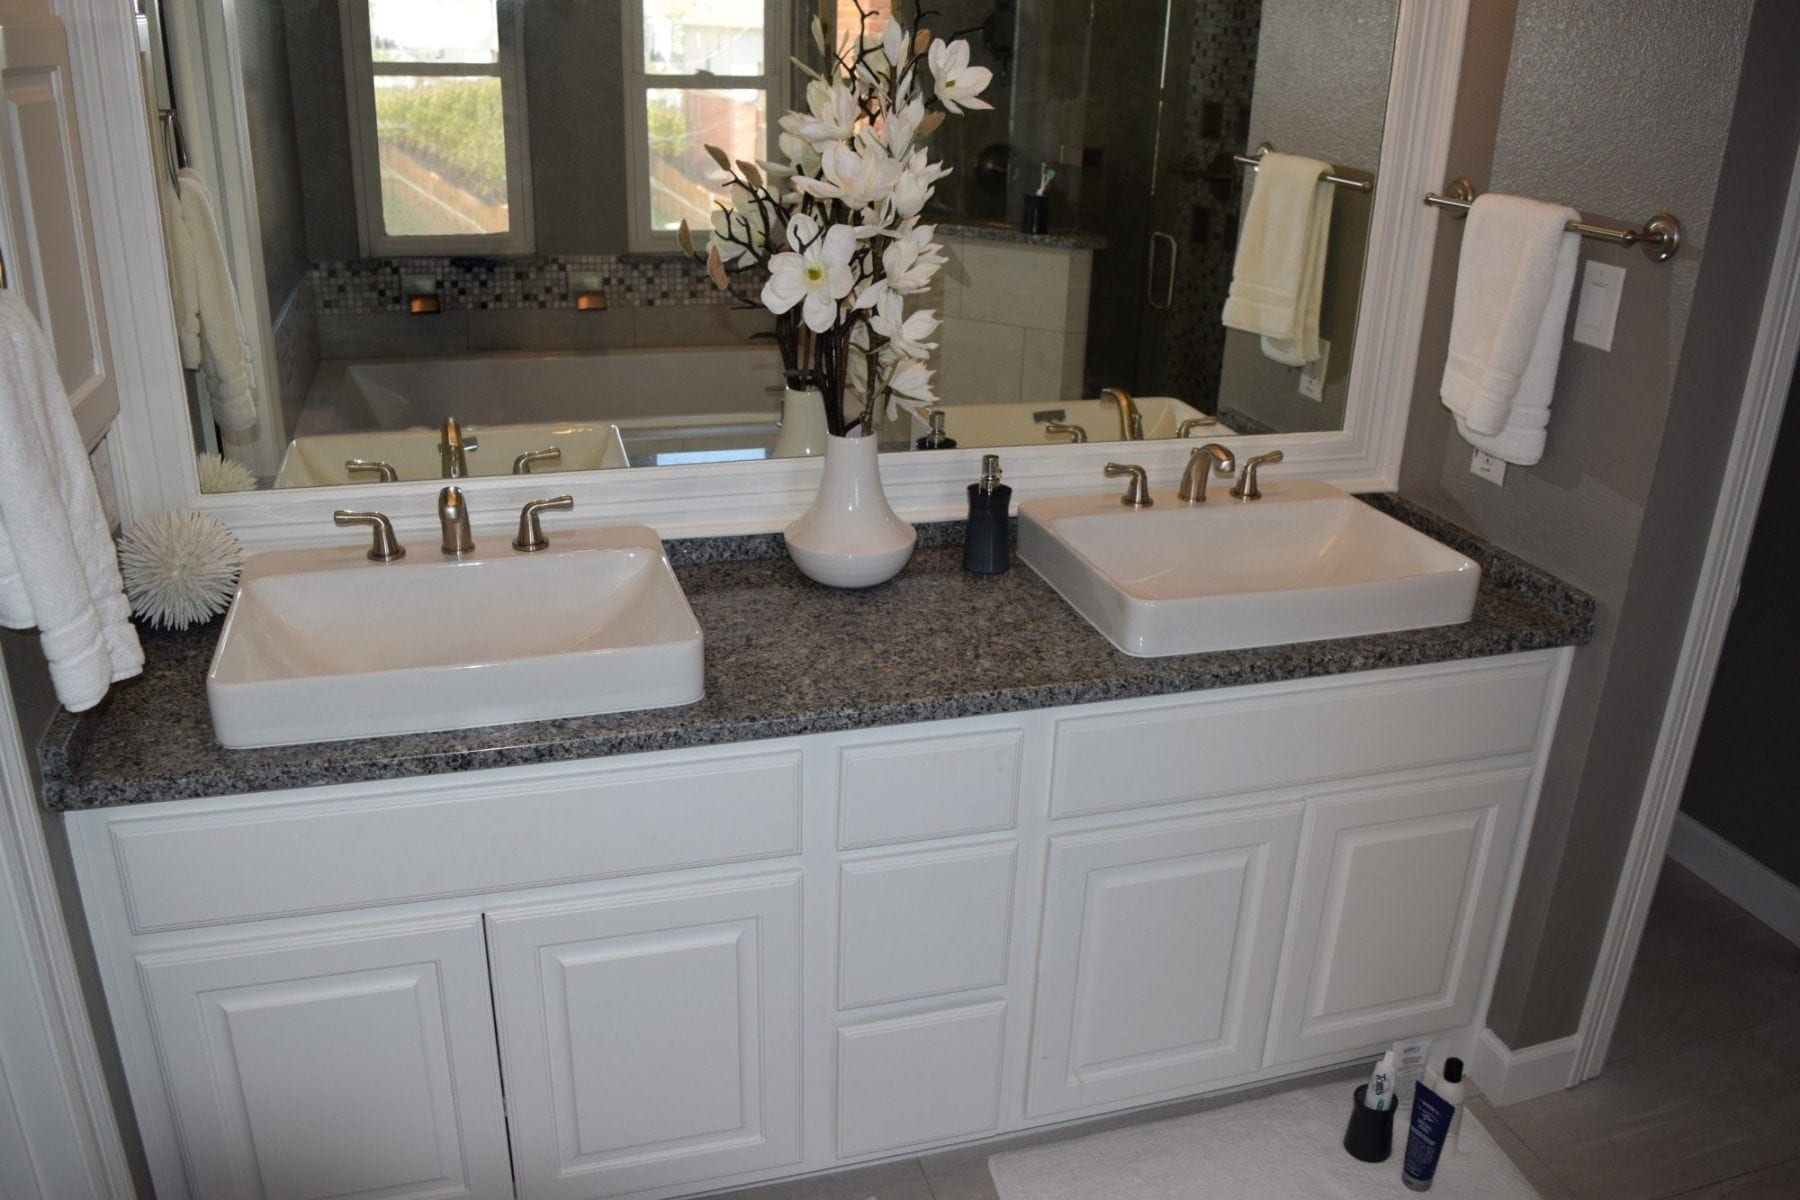 Condo Bathroom Remodel oak-lawn-condo-bathroom-remodel-after-renovation-vanity - renowned